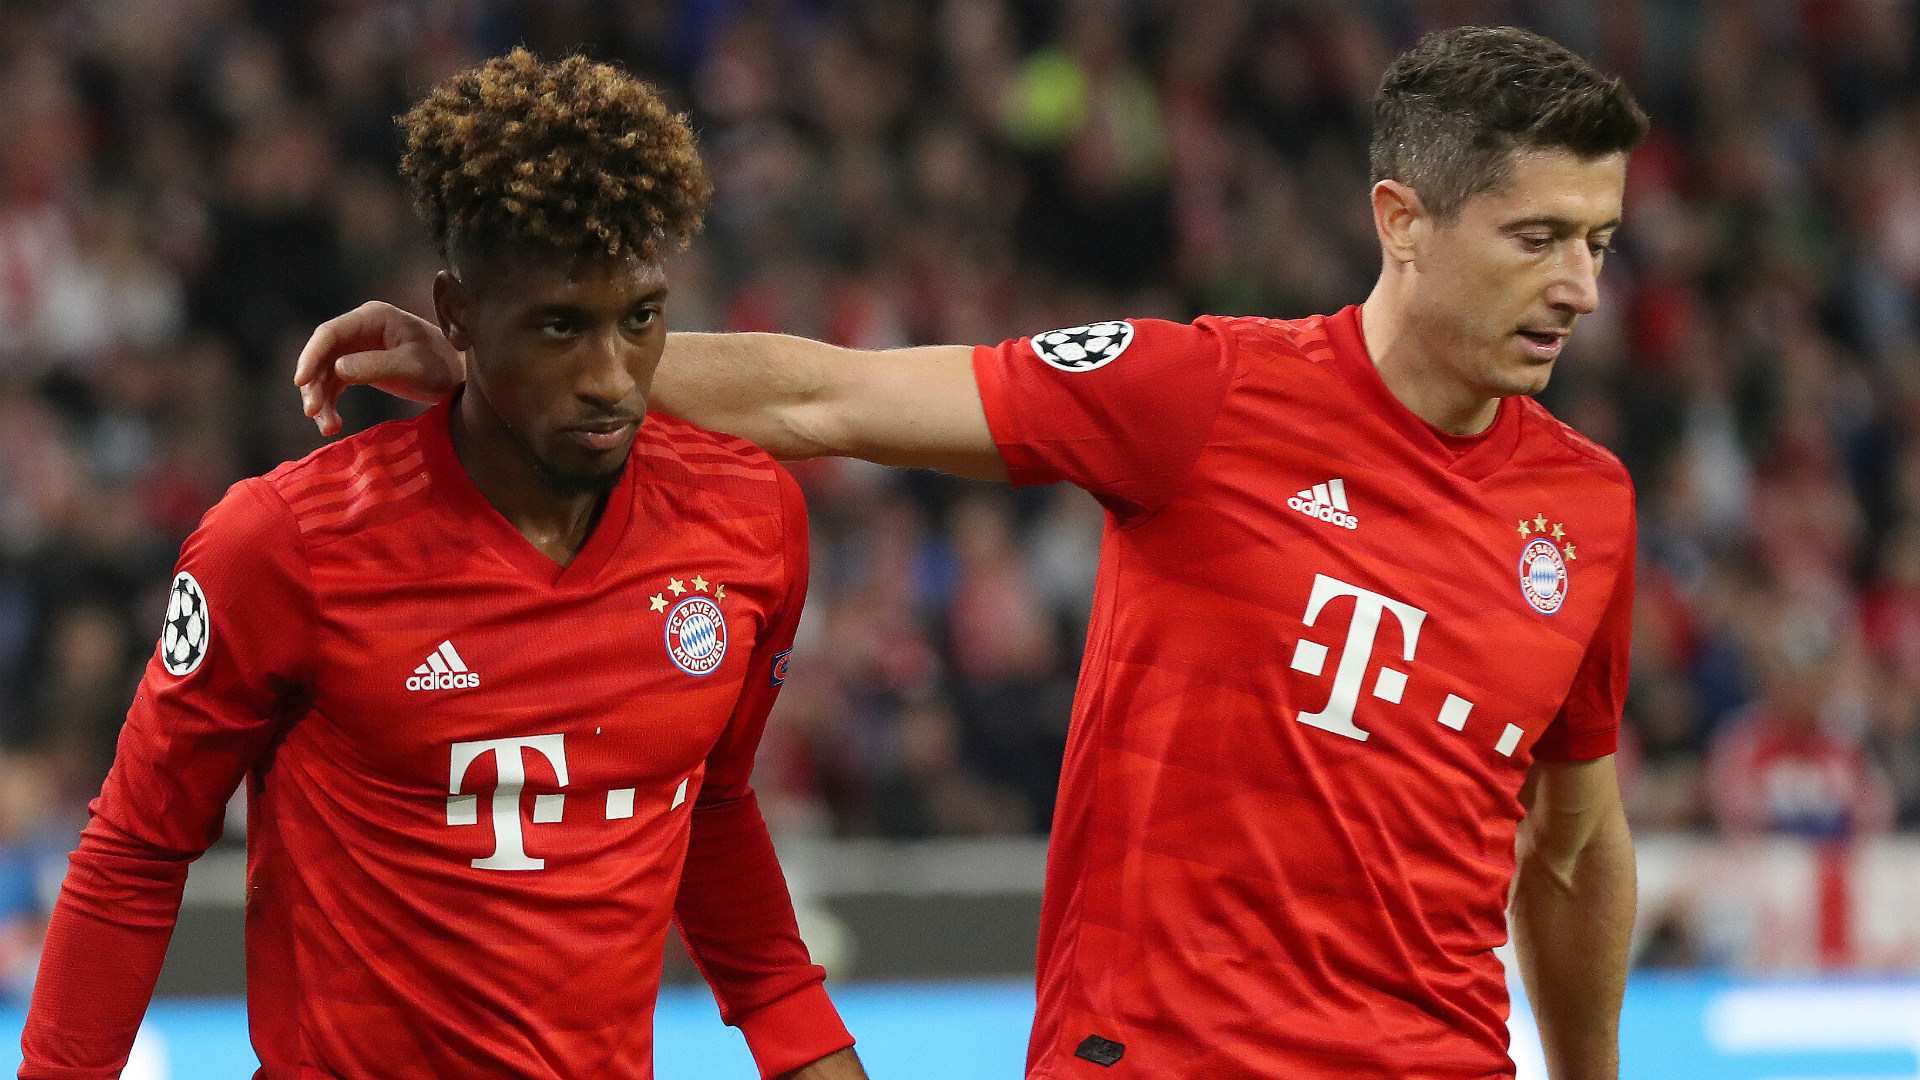 'I'm sure I'll stay at Bayern for a long time' - Coman has no plans to leave Munich